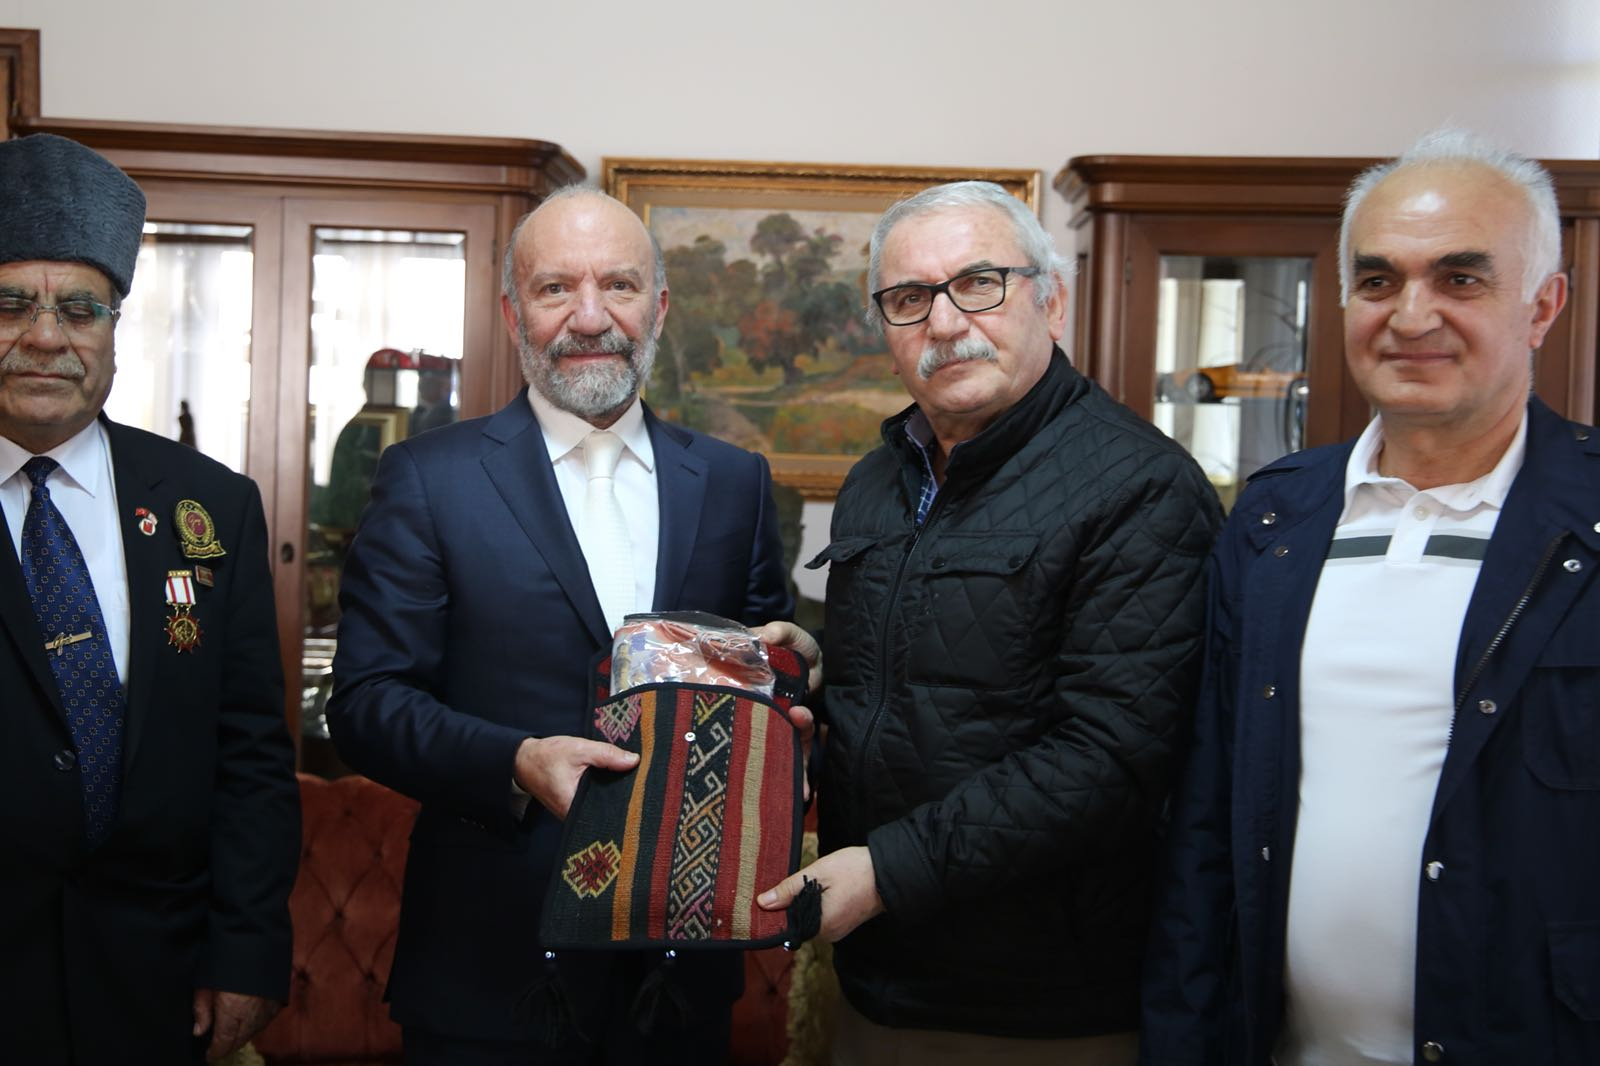 Near East University Founding Rector Dr. Suat İ. Günsel welcomes a Delegation from Sivas Municipality and Sivas Martyrs' Families and Veterans Association in his office